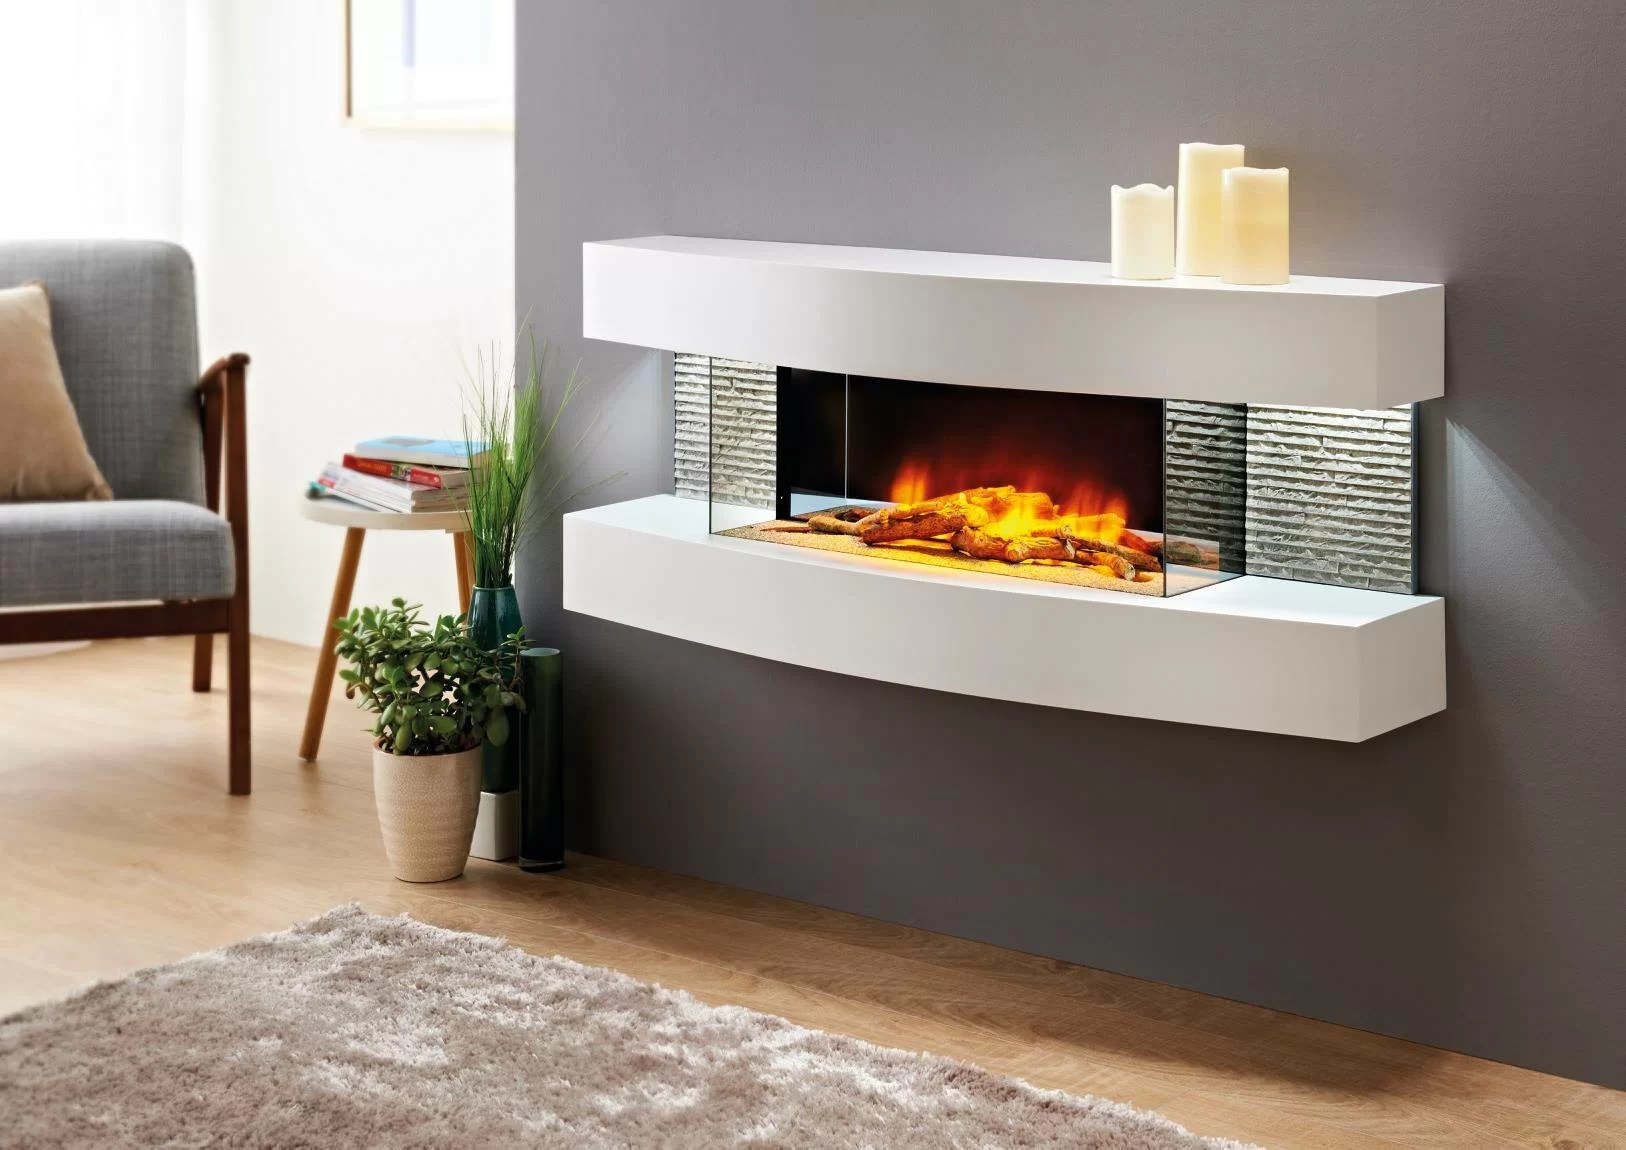 Wall Mount Fireplaces Fraenzel Curve Wall Mounted Electric Fireplace